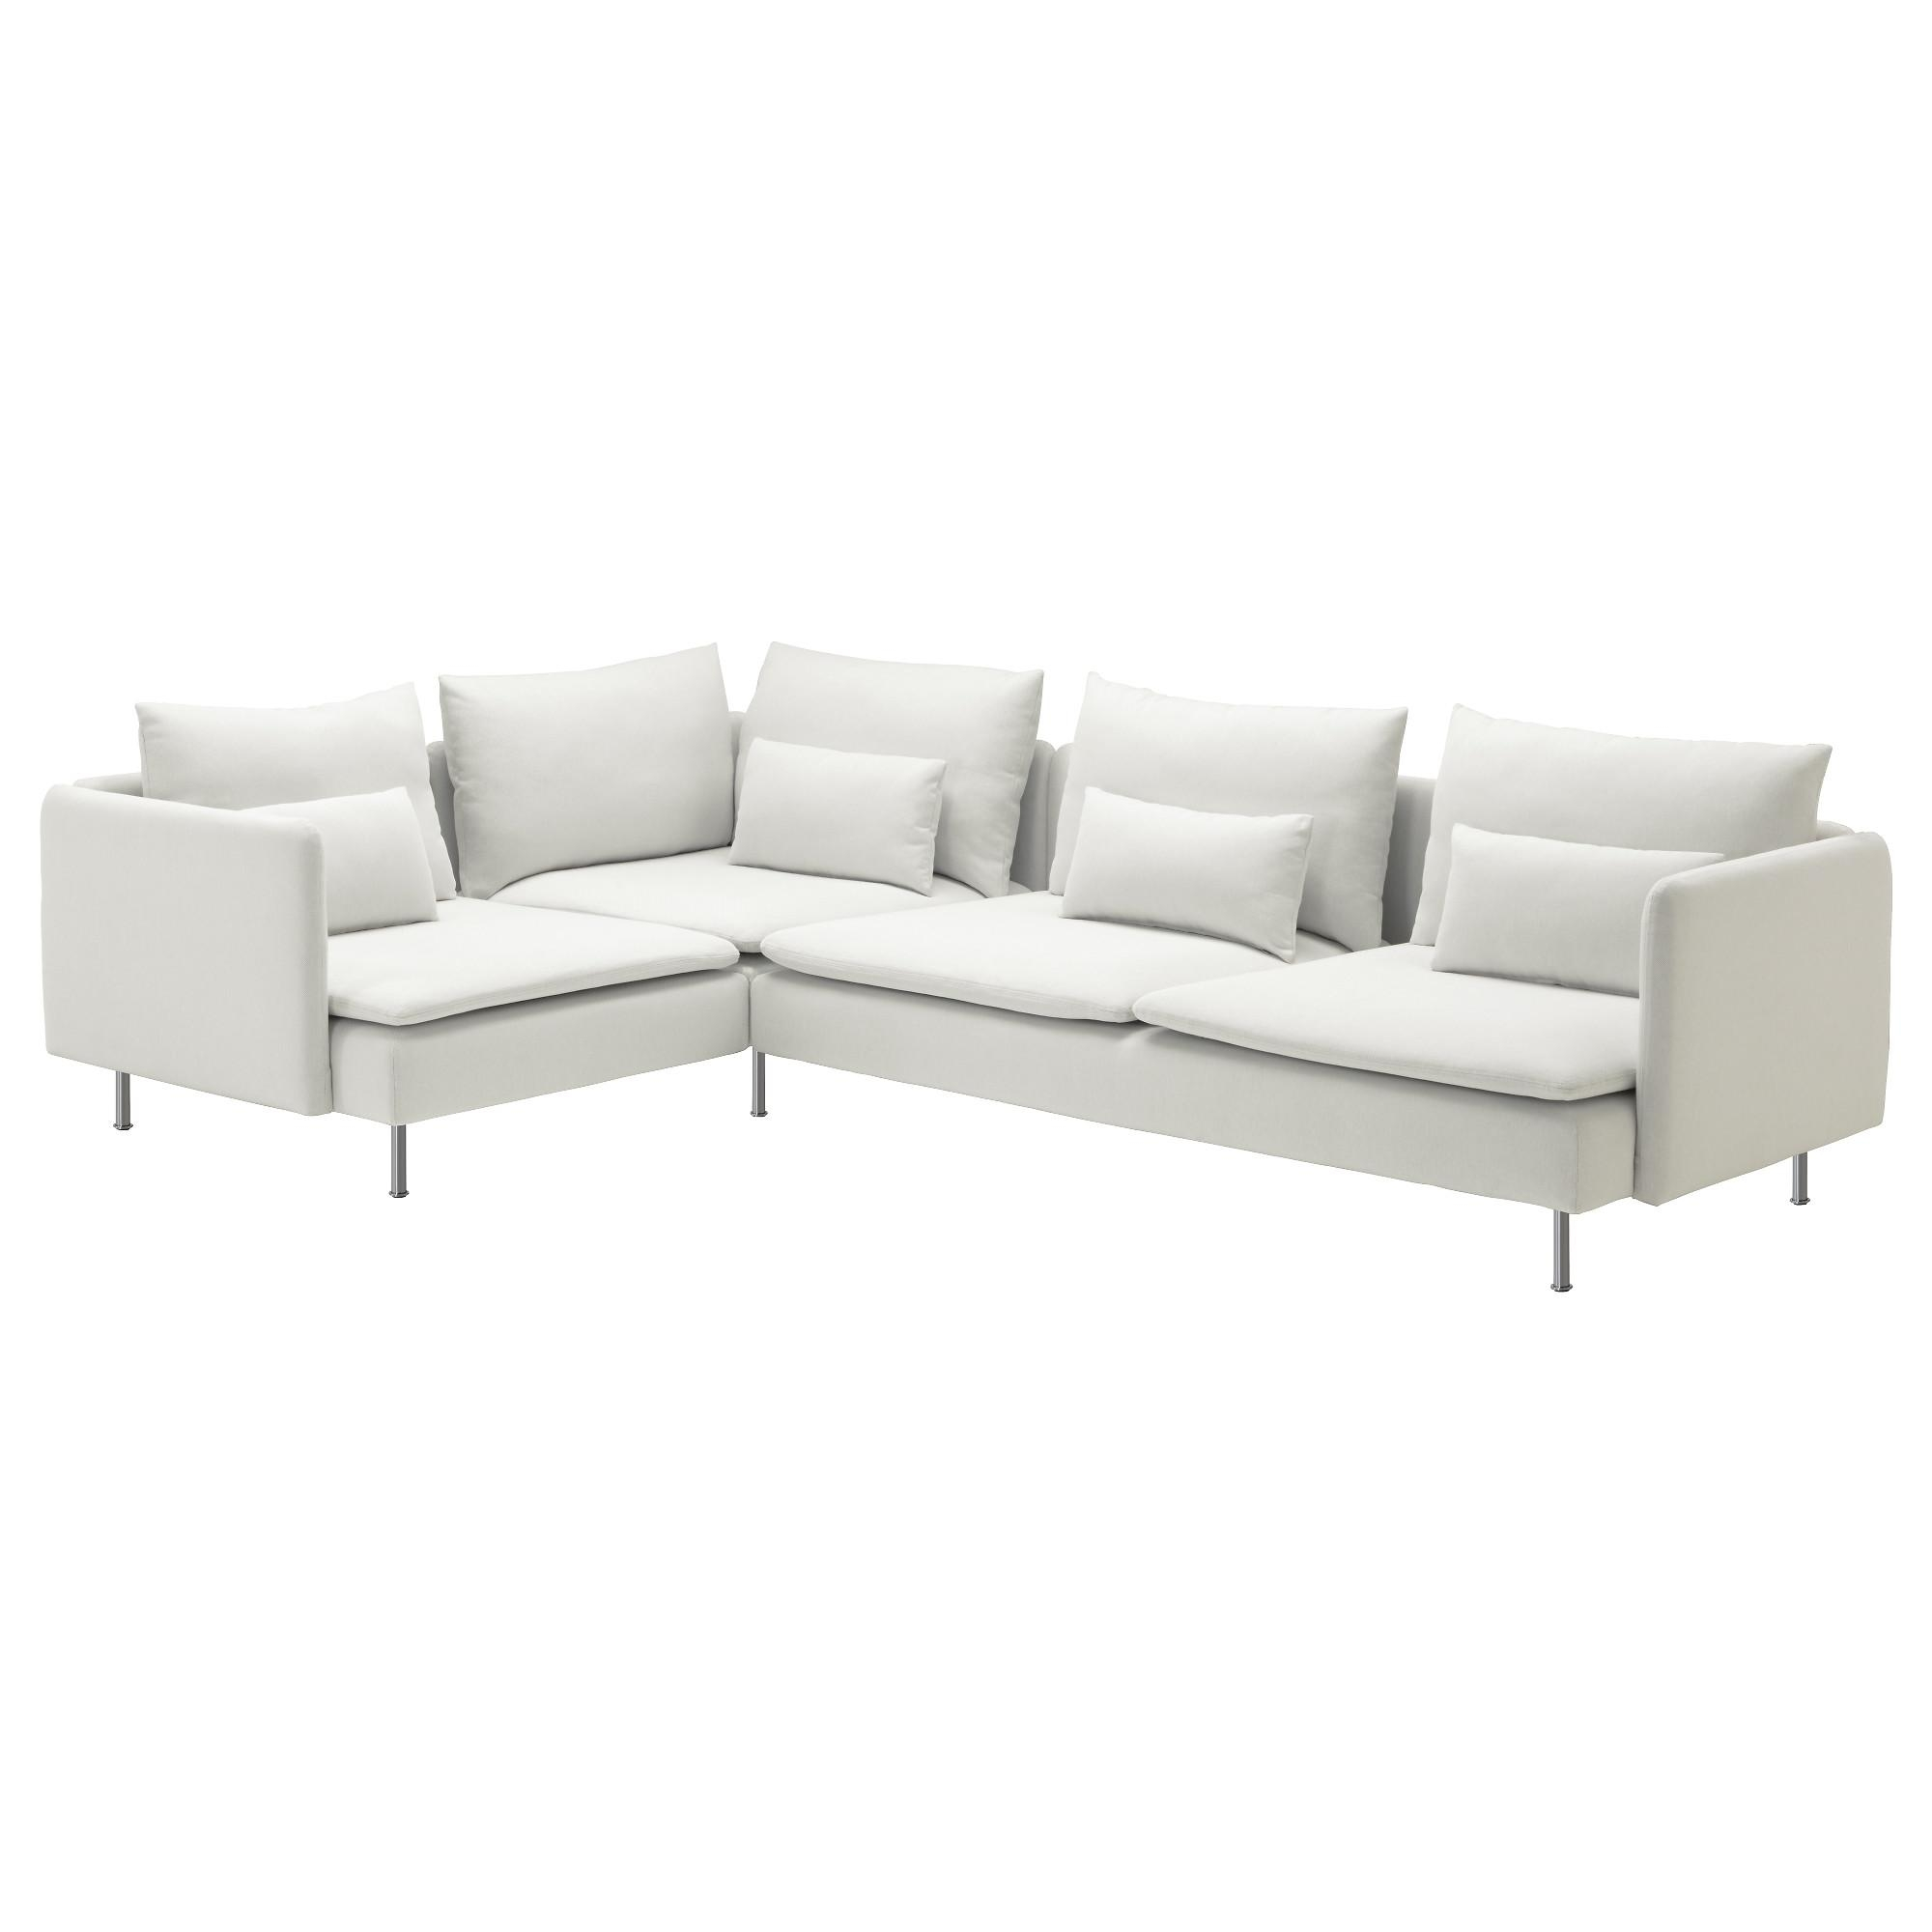 Sectional Sofas & Couches – Ikea With Regard To Ikea Sectional Sofa Bed (View 13 of 20)